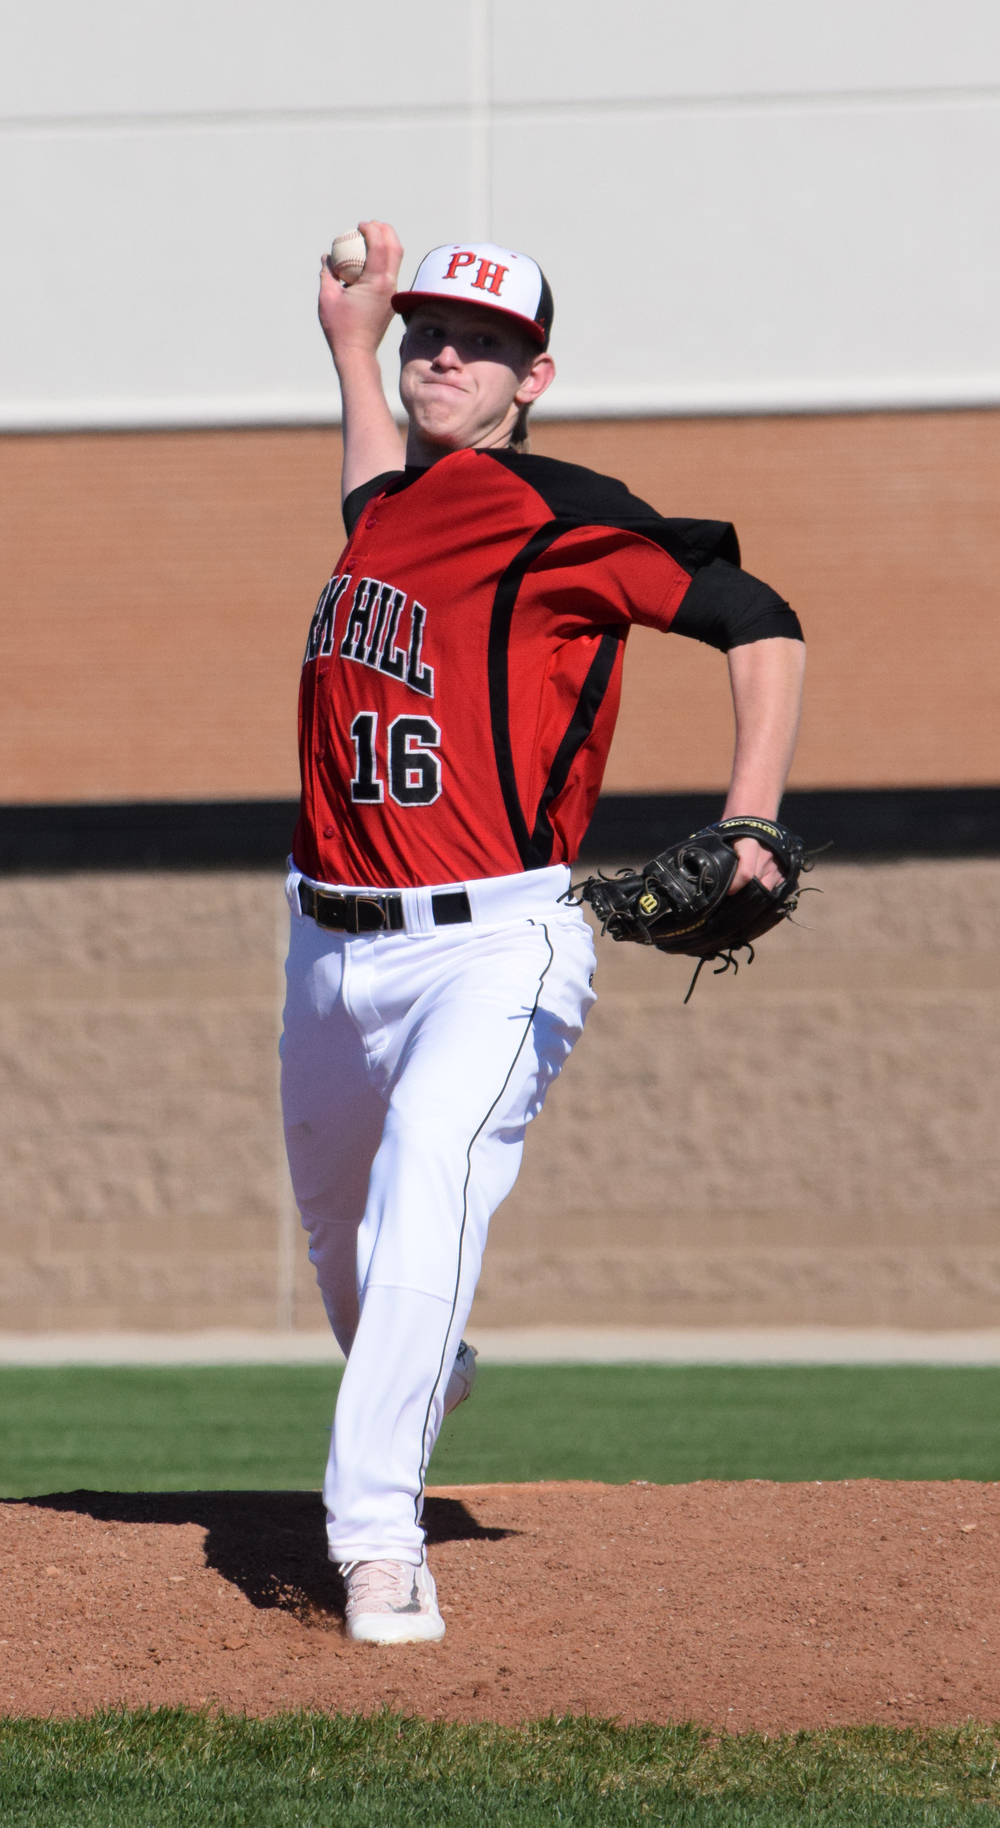 BRYCE MERENESS/Citizen photo Park Hill senior Chris Bolte delivers a pitch in the opening game of a doubleheader on Saturday, April 2 at Park Hill High School in Kansas City, Mo.